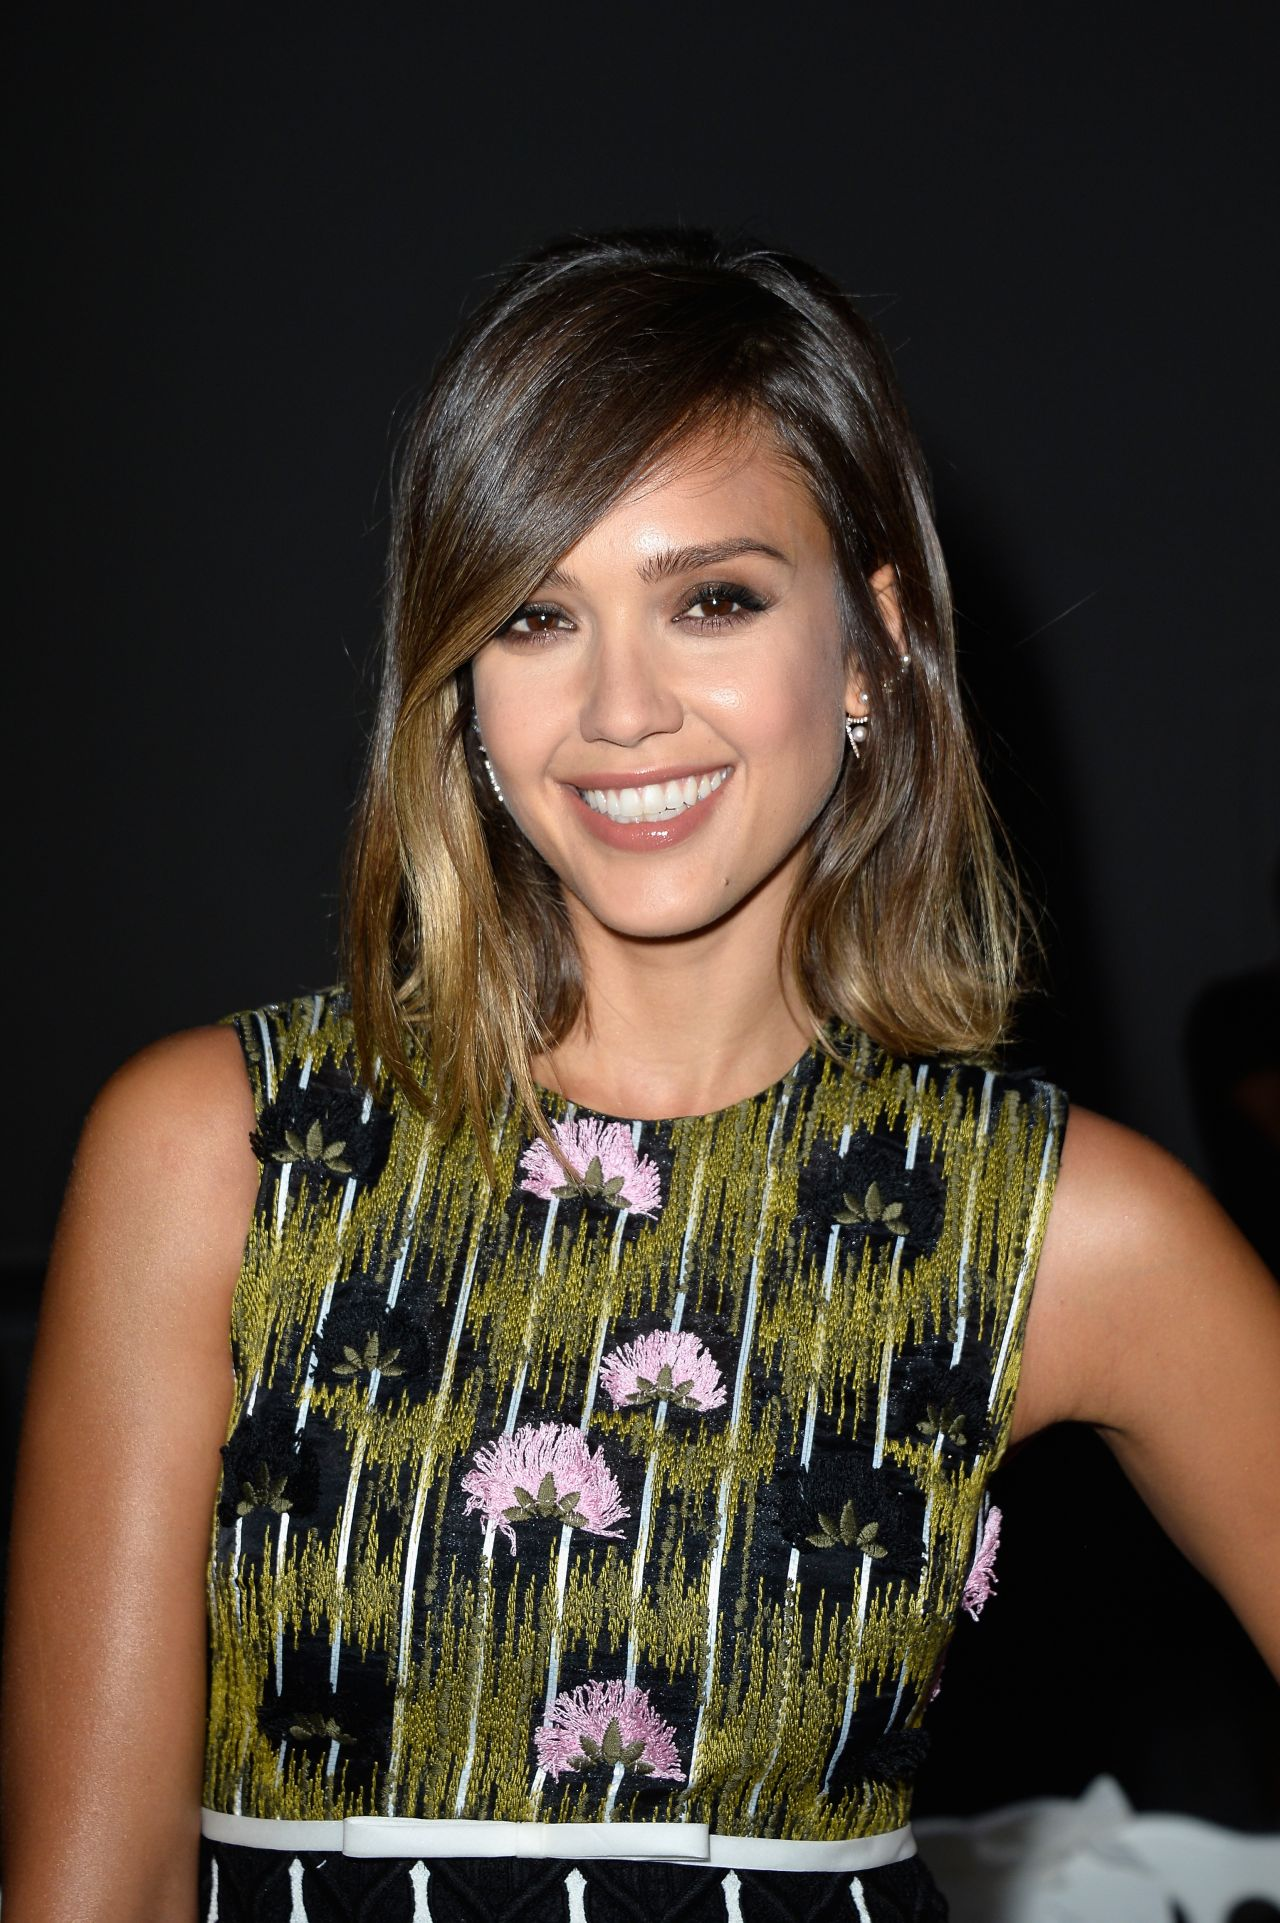 jessica-alba-in-giambattista-valli-at-m-a-c-cosmetics-giambattista-valli-floral-obsession-ball